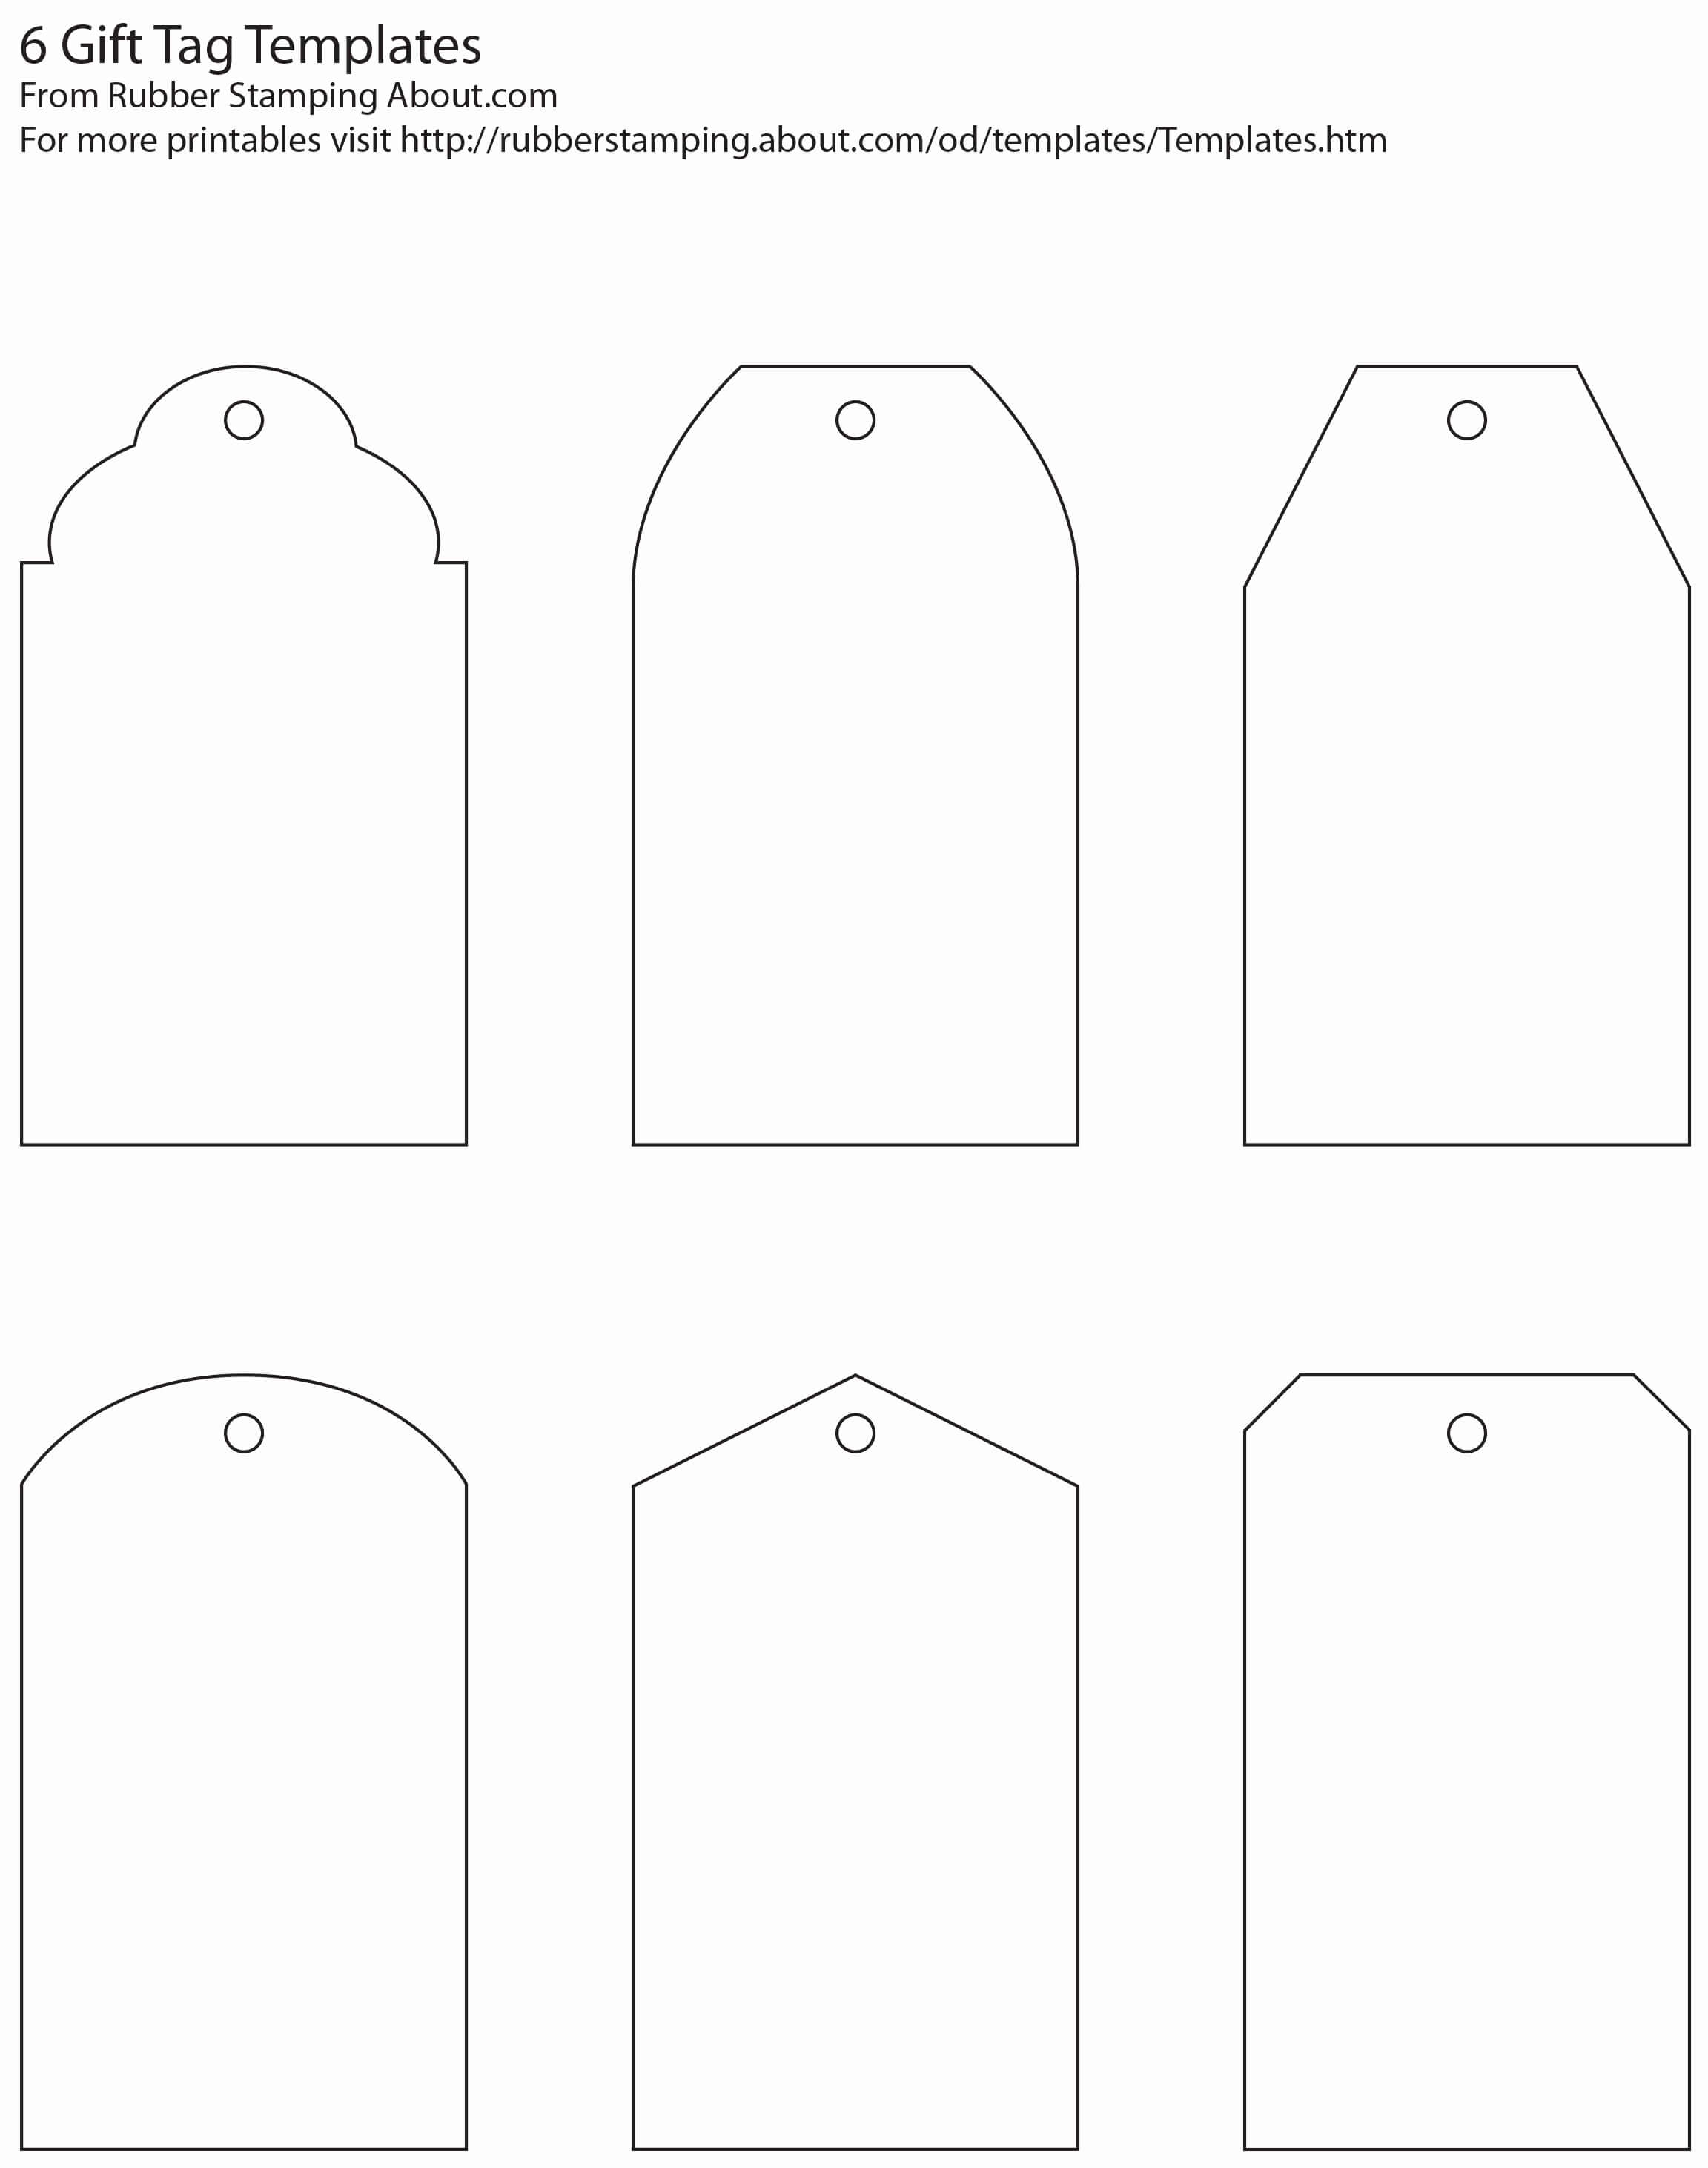 30 Gift Tag Template Word | Tate Publishing News regarding Free Gift Tag Templates For Word